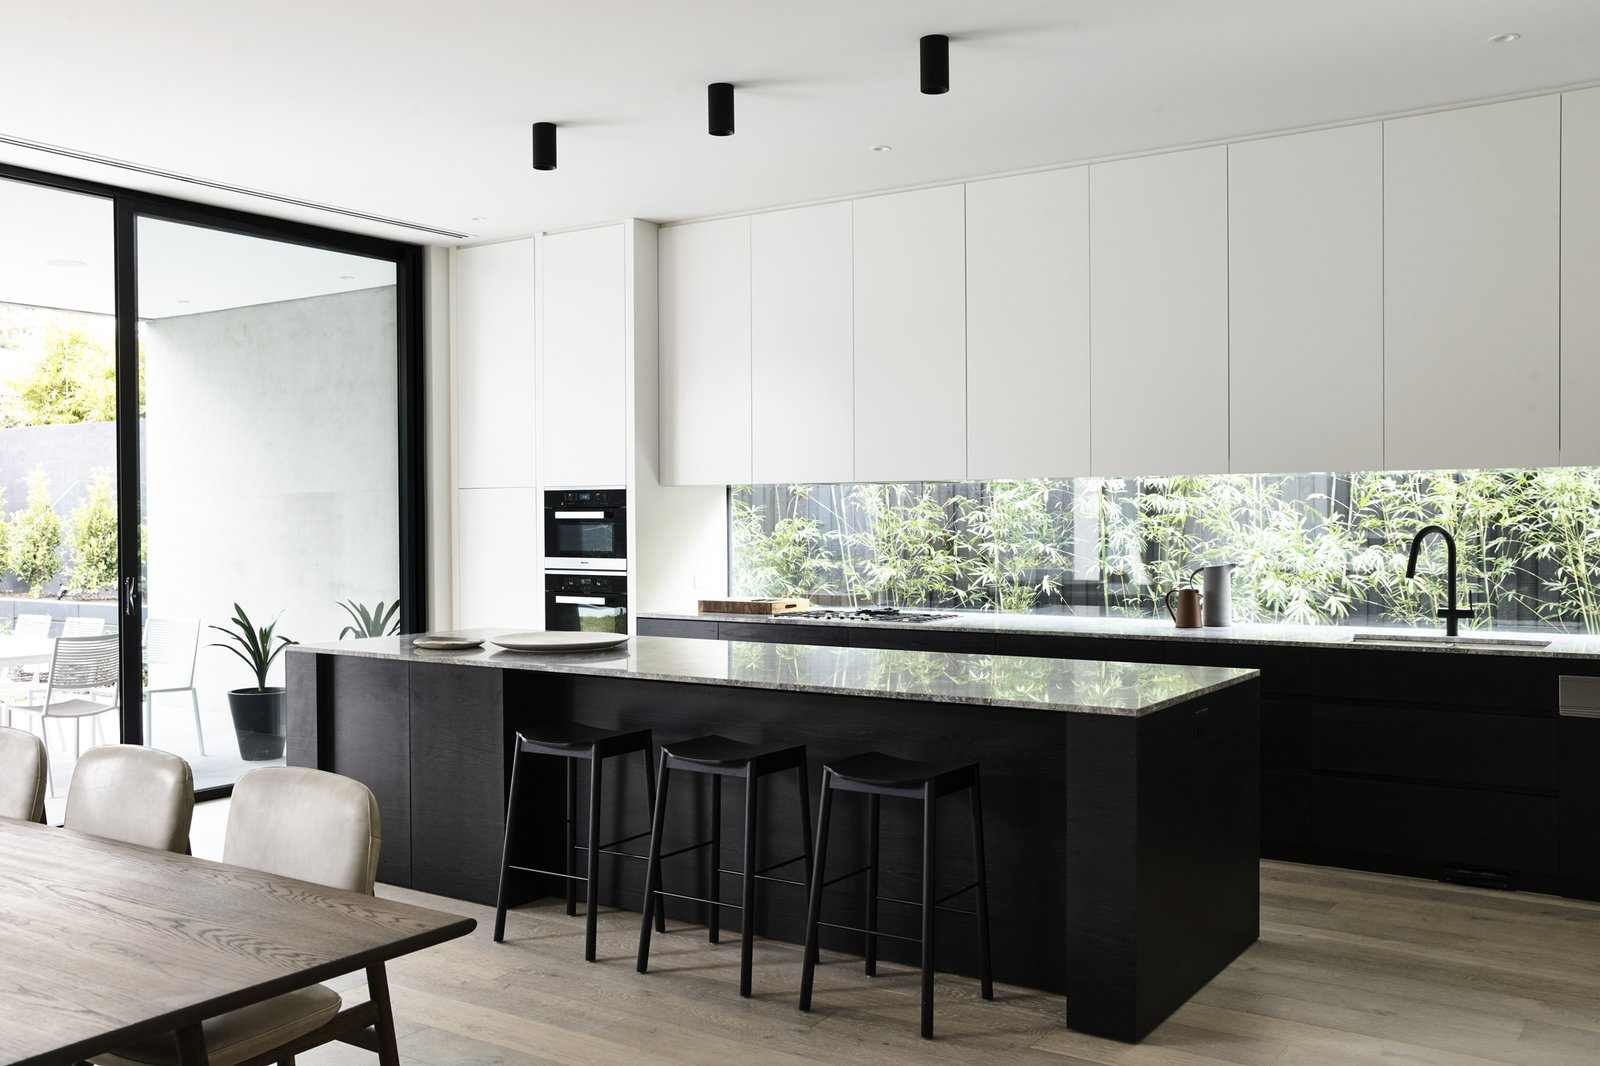 Kitchen, Marble Counter, Drop In Sink, Dishwasher, Wall Oven, Ceiling Lighting, Microwave, Light Hardwood Floor, and Wood Cabinet Canny 'The New' Kitchen  The New